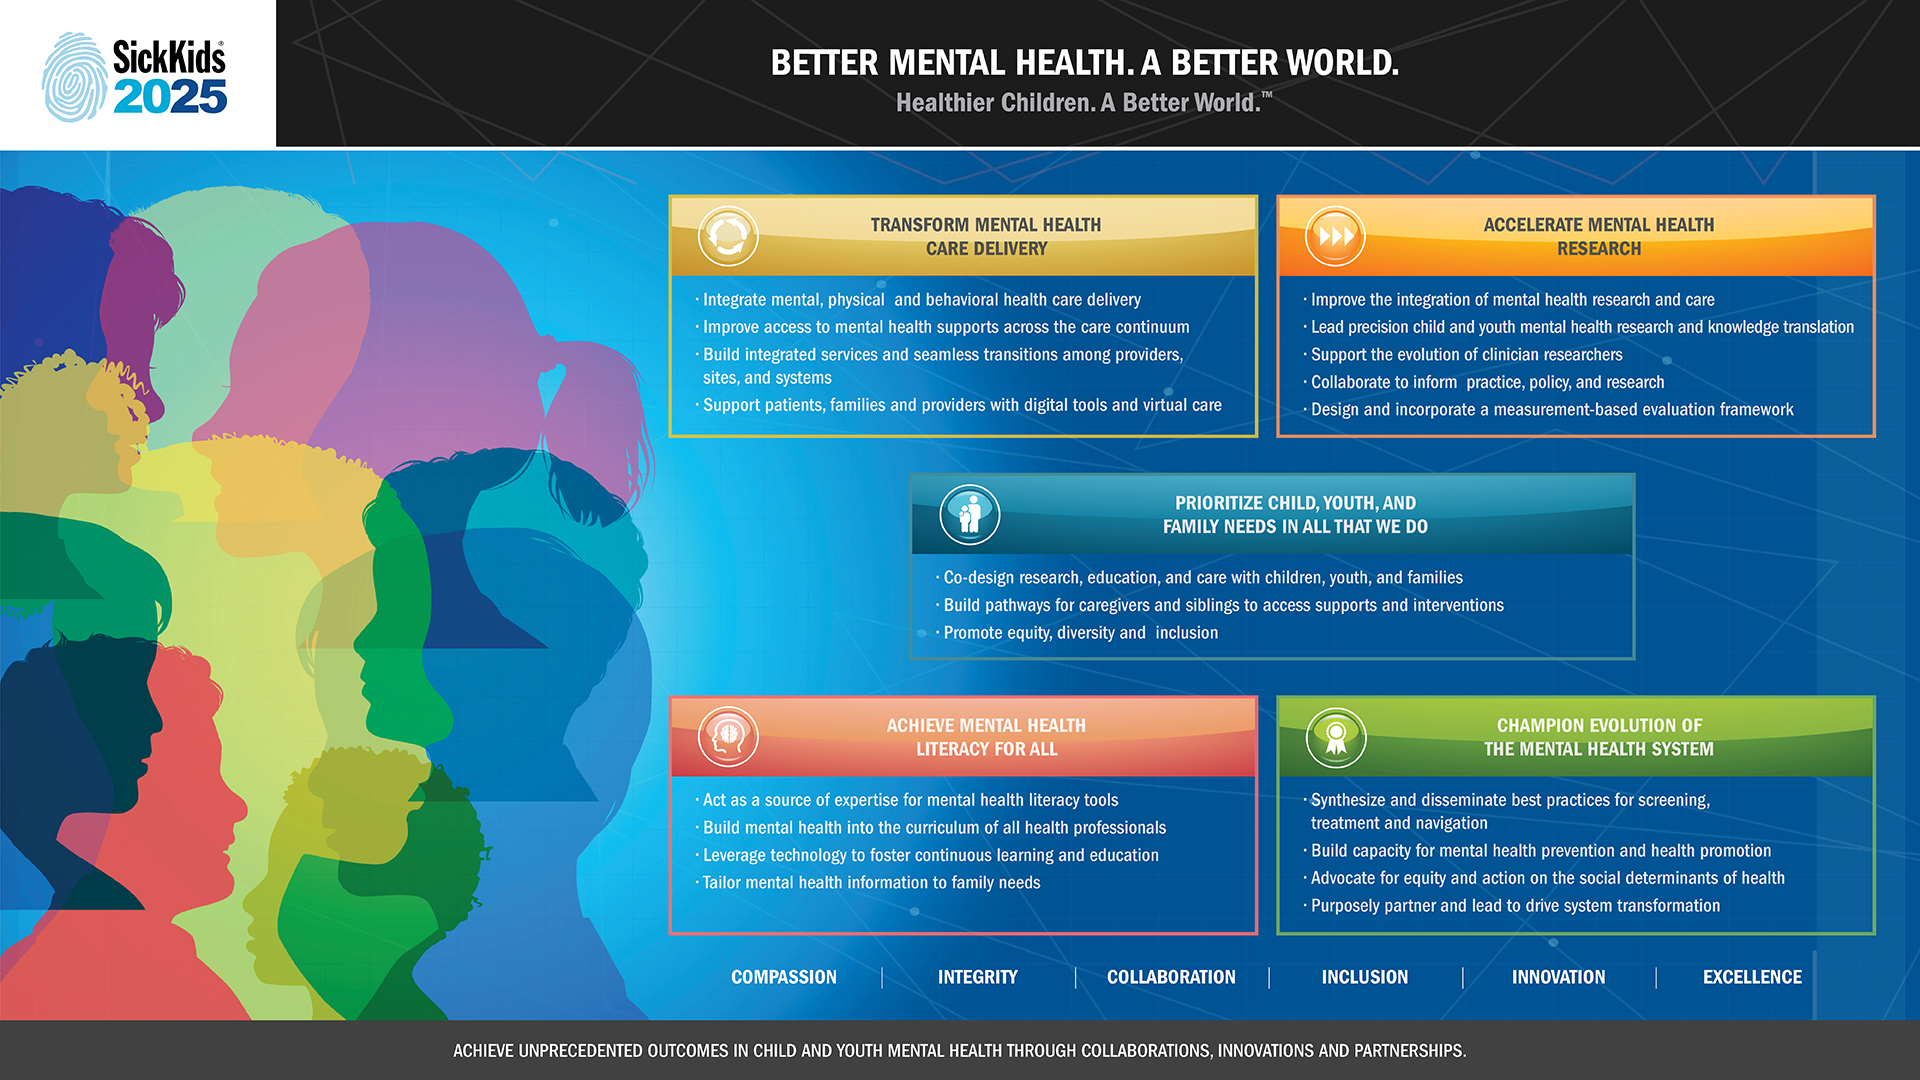 View a PDF of the Mental Health strategy map